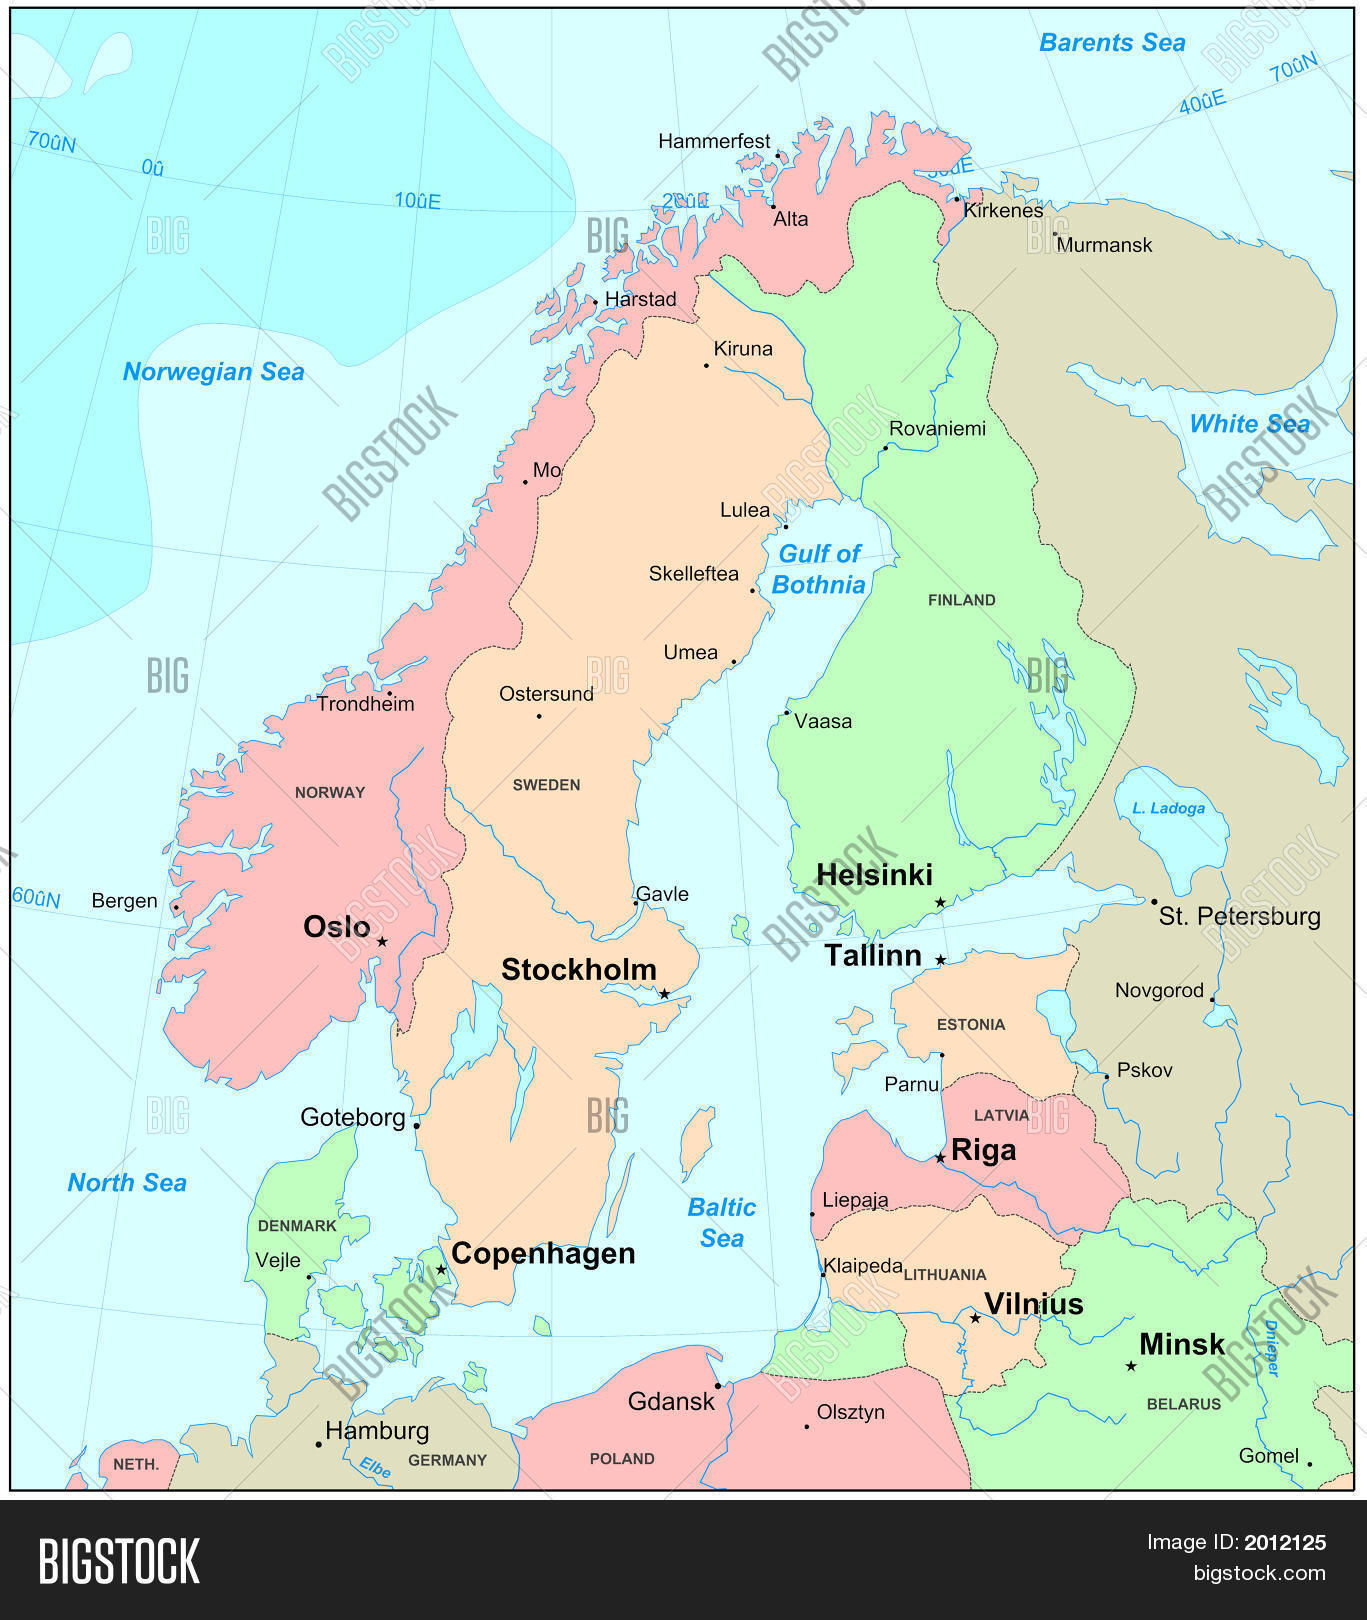 Scandinavia Map Image & Photo (Free Trial) | Bigstock